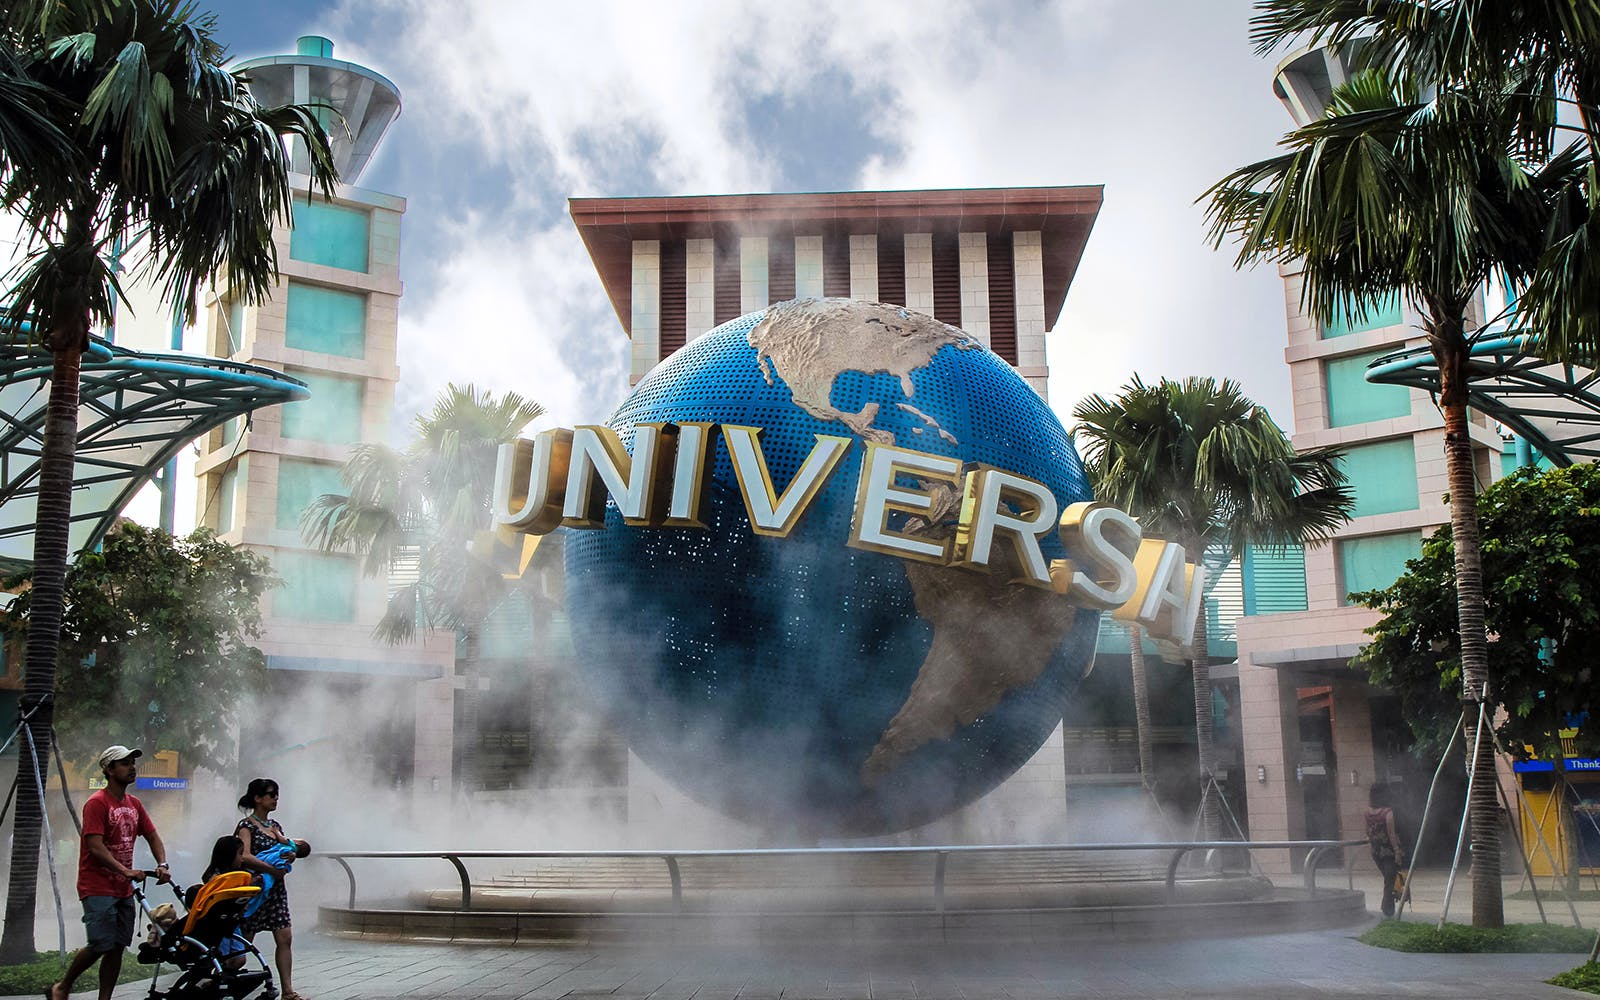 Ultimate Combo: Universal Studios + Adventure Cove Water Park + S.E.A Aquarium